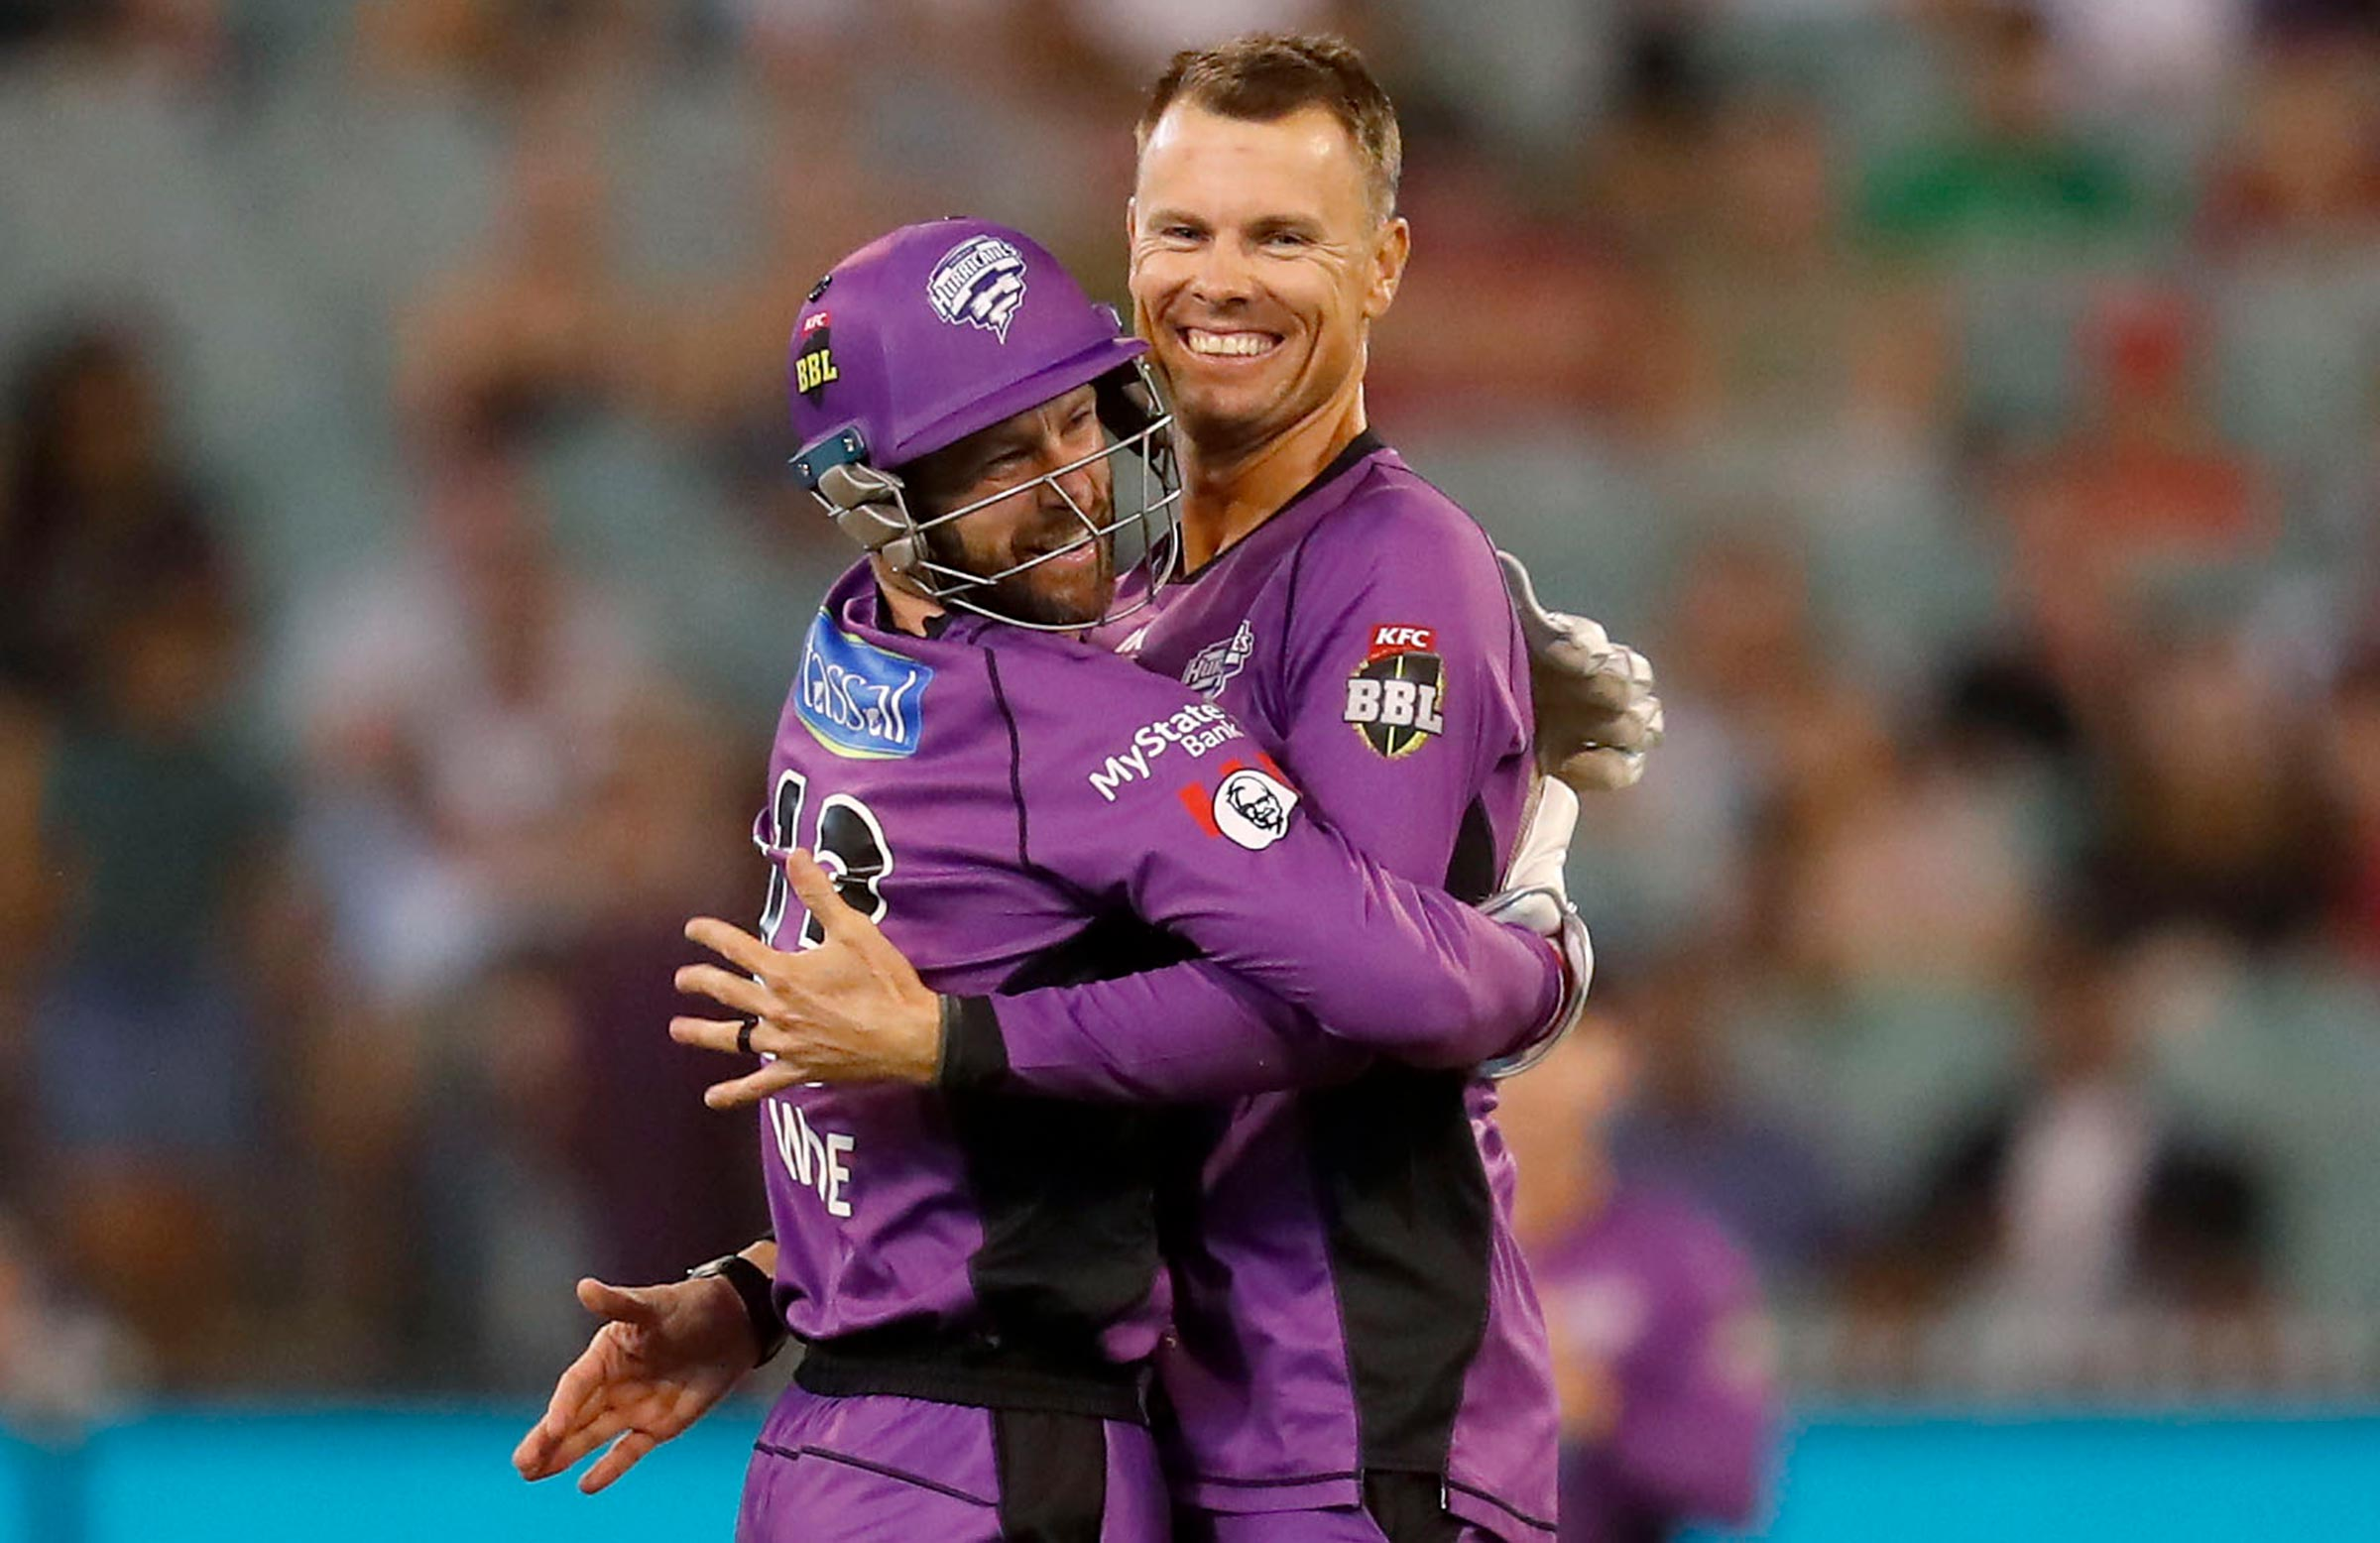 Botha and Matthew Wade celebrate a wicket this season // Getty